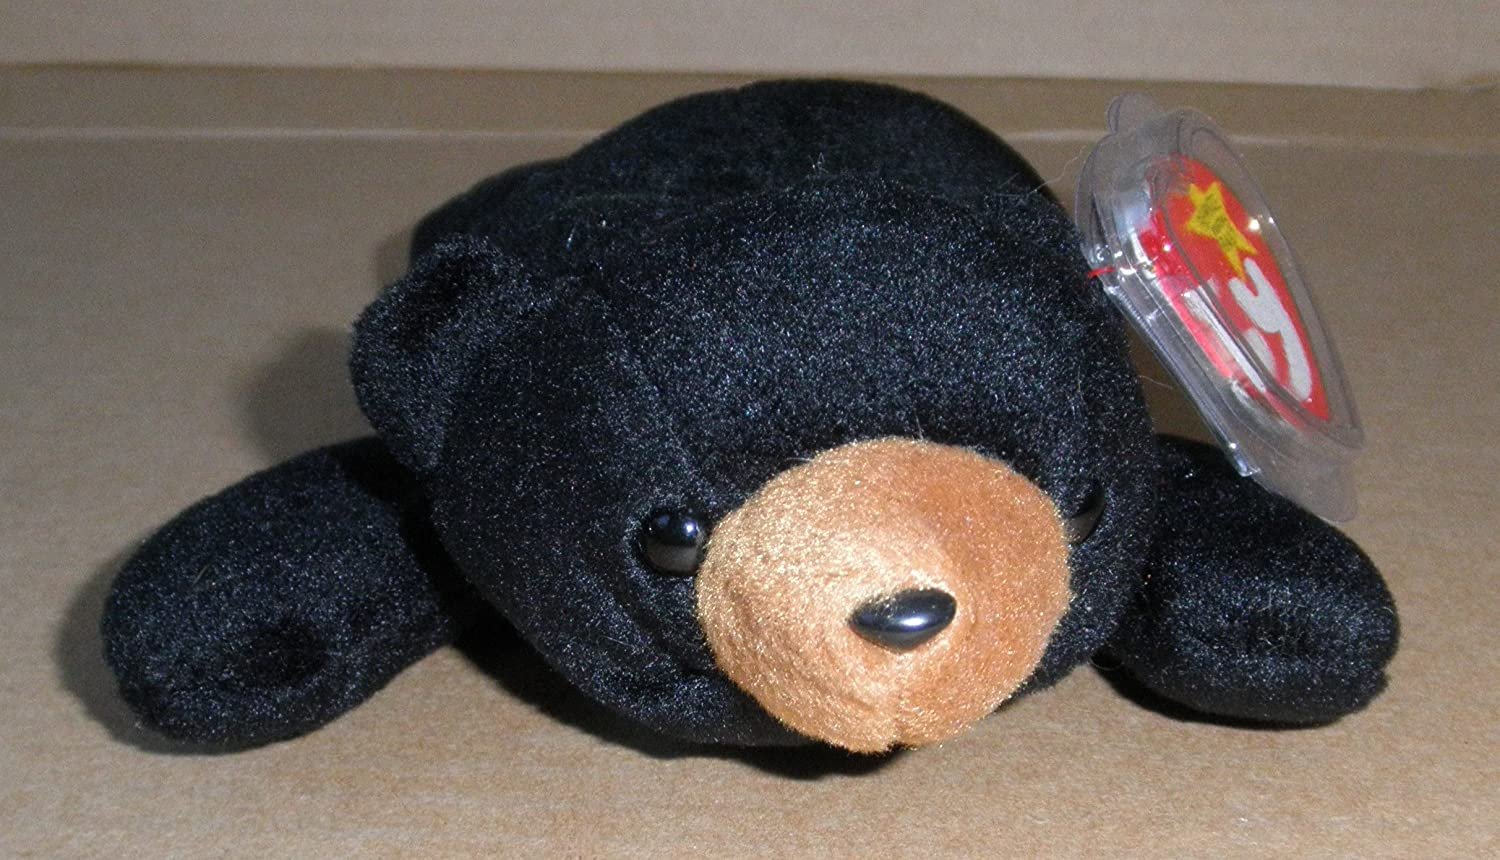 Amazon.com  TY Beanie Babies Blackie Bear Stuffed Animal Plush Toy - 9 inches  long - Black with Brown Nose  Office Products 7f775e189b77